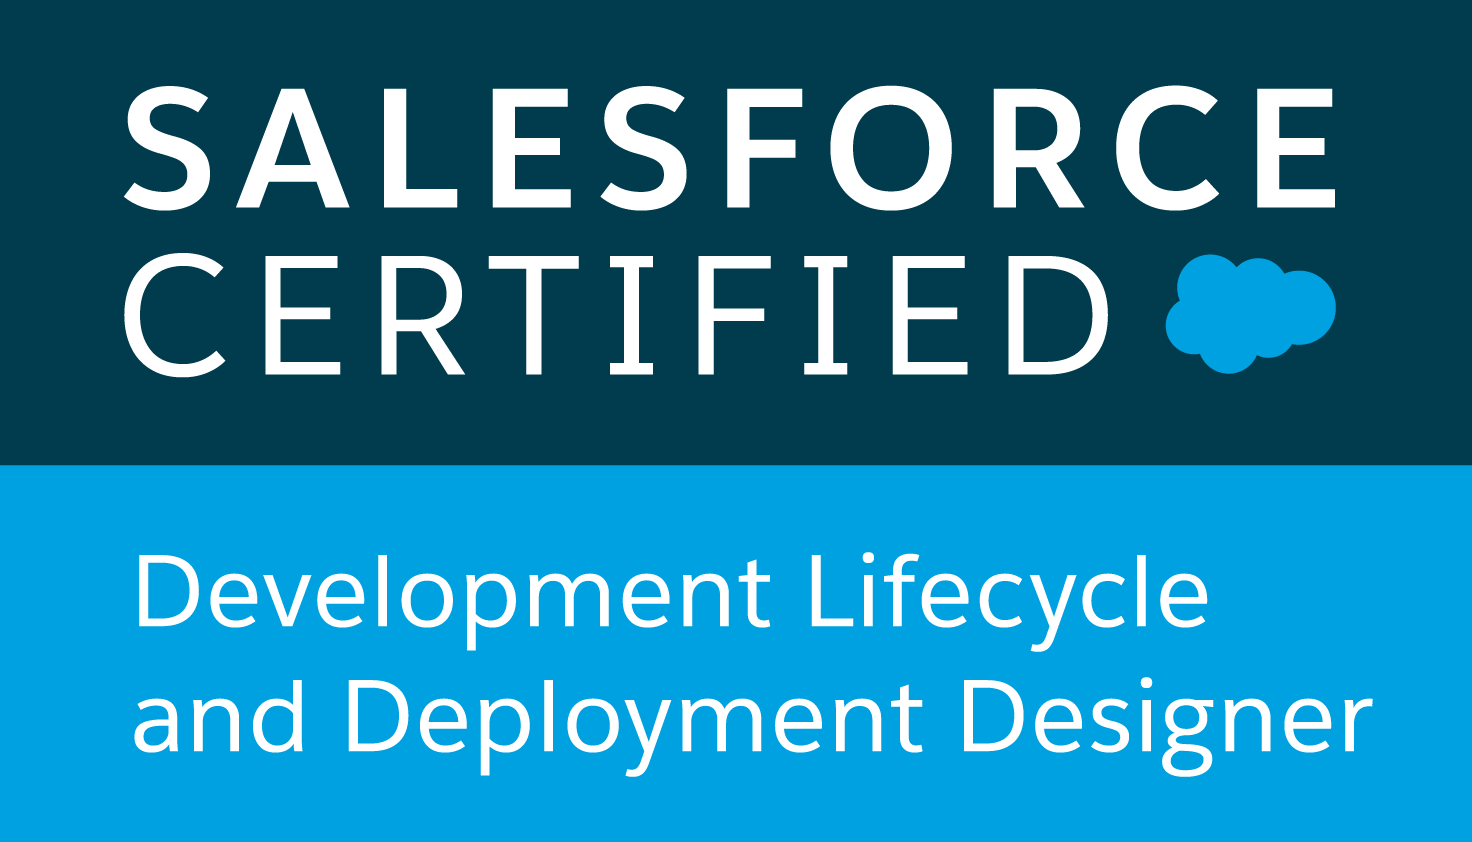 Certified Salesforce Development Lifecycle and Deployment Designer